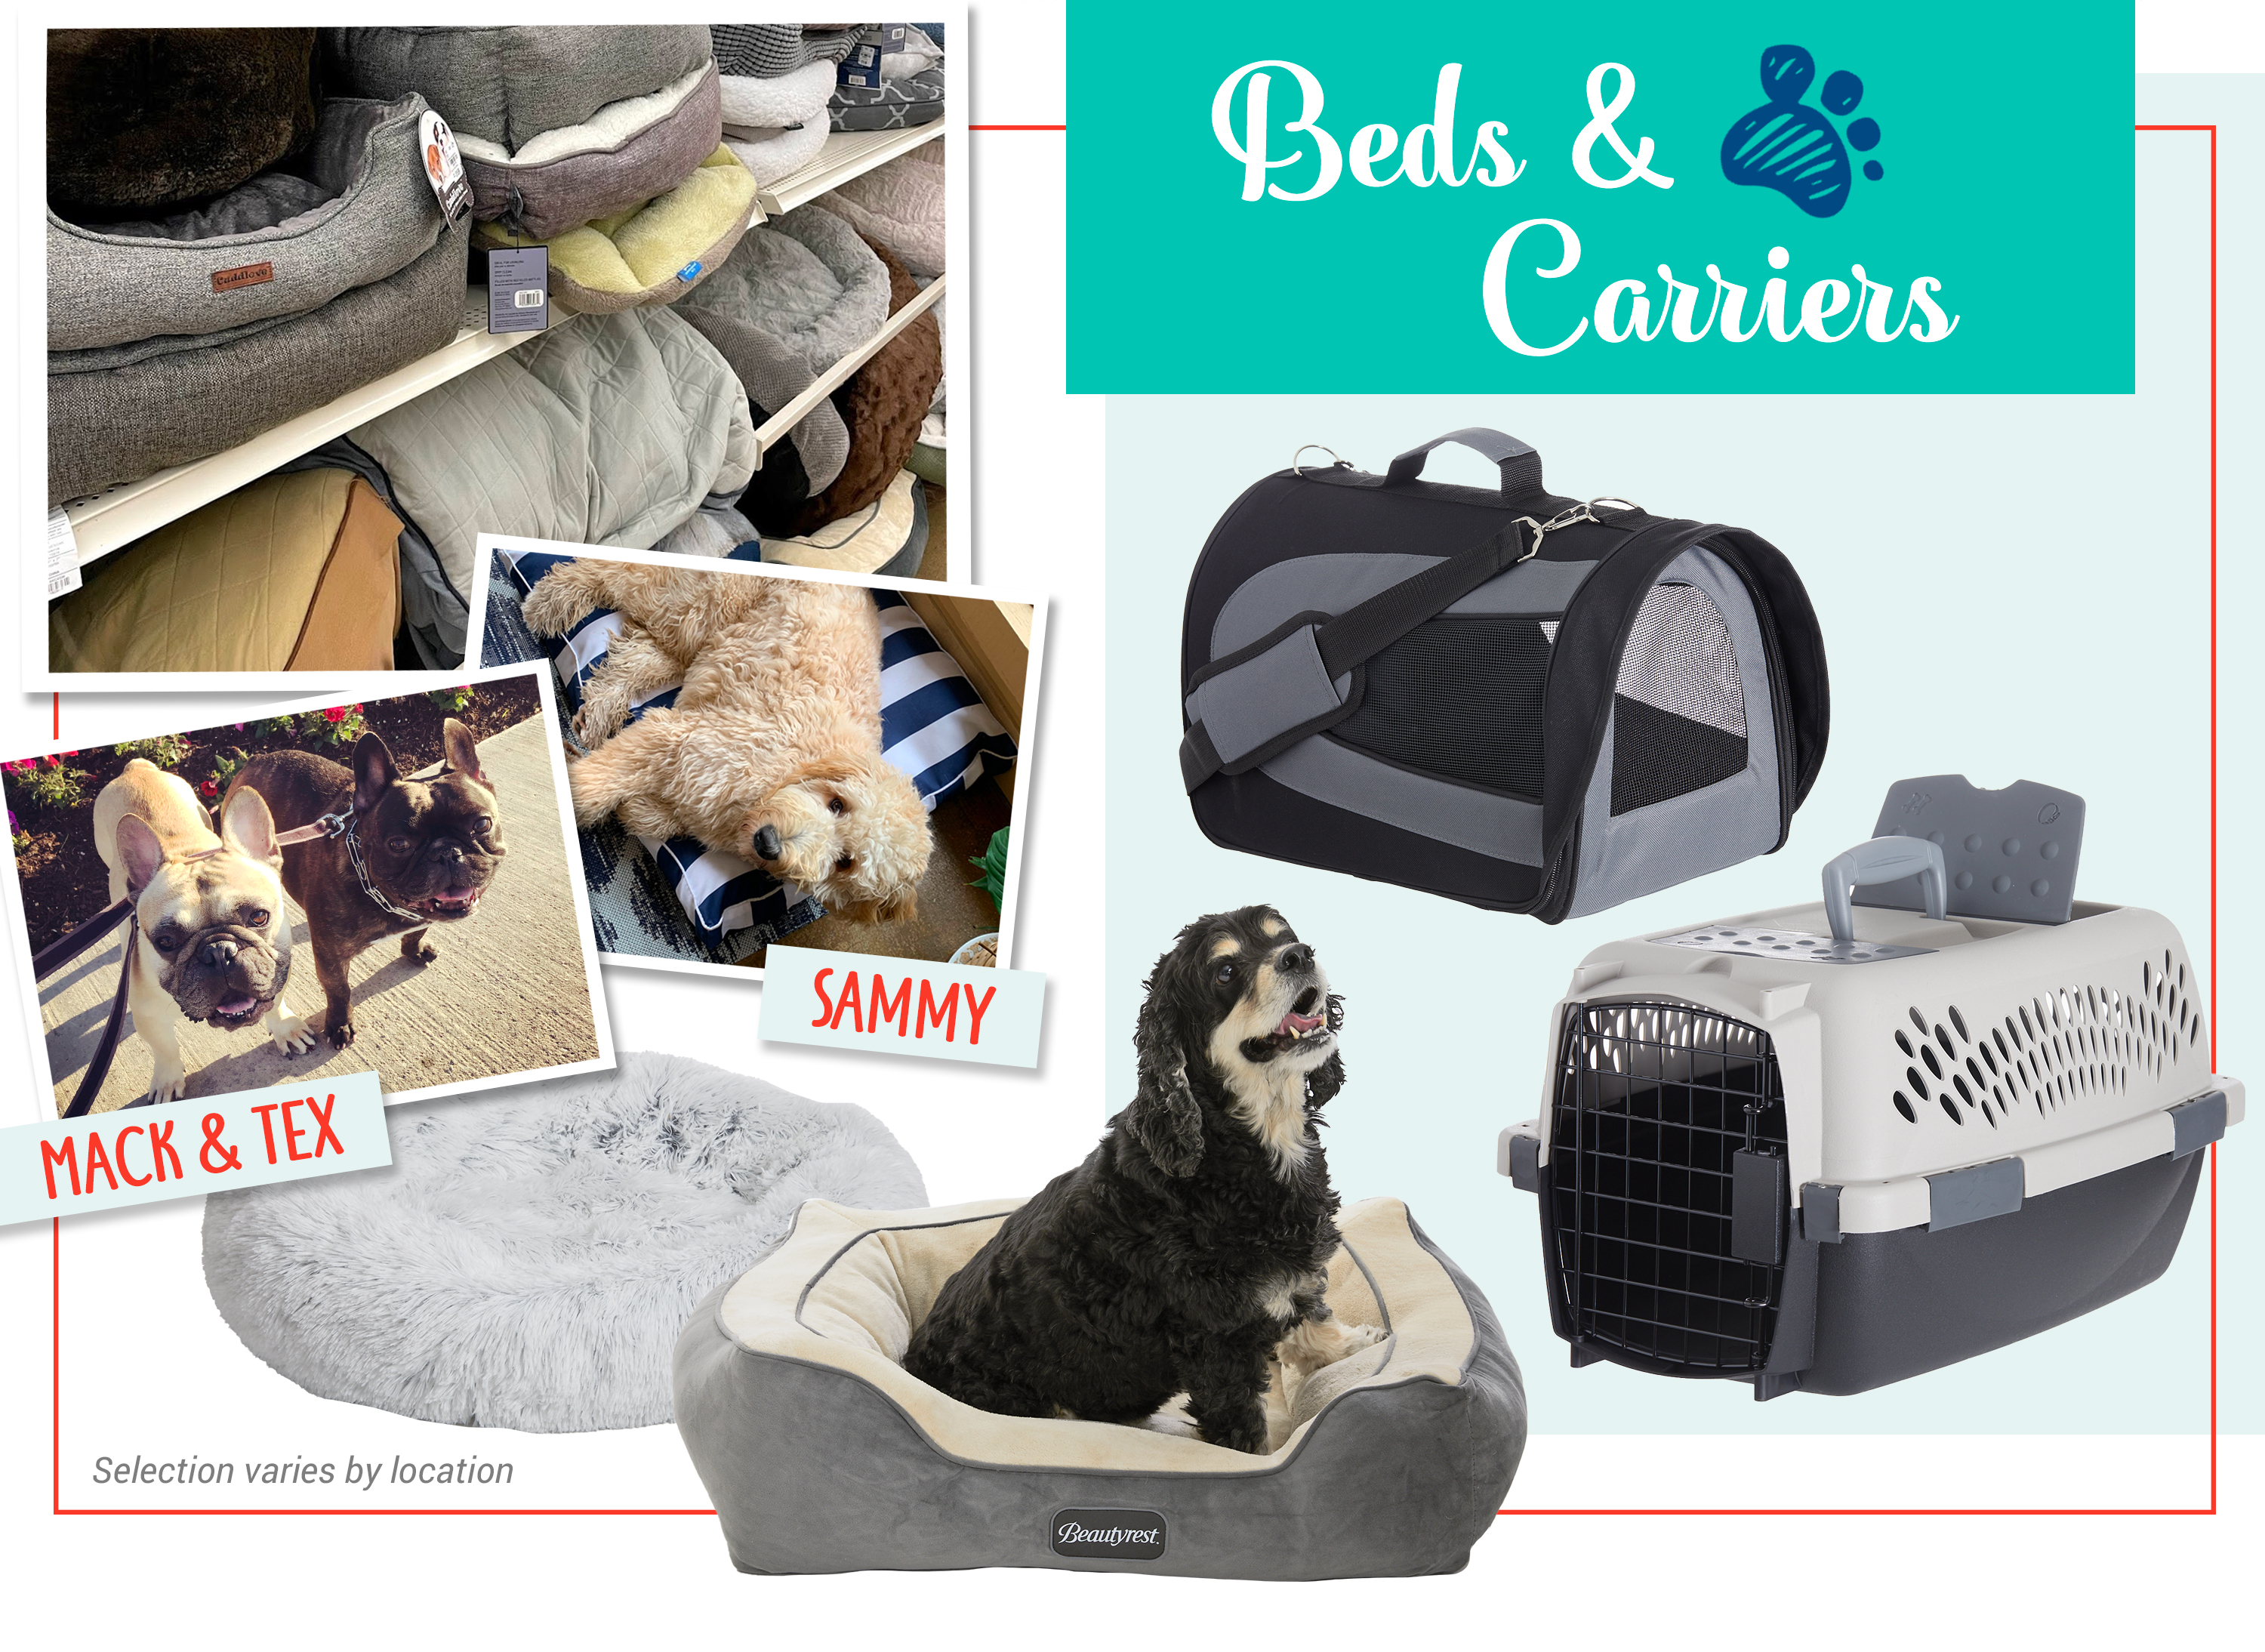 Beds & Carriers